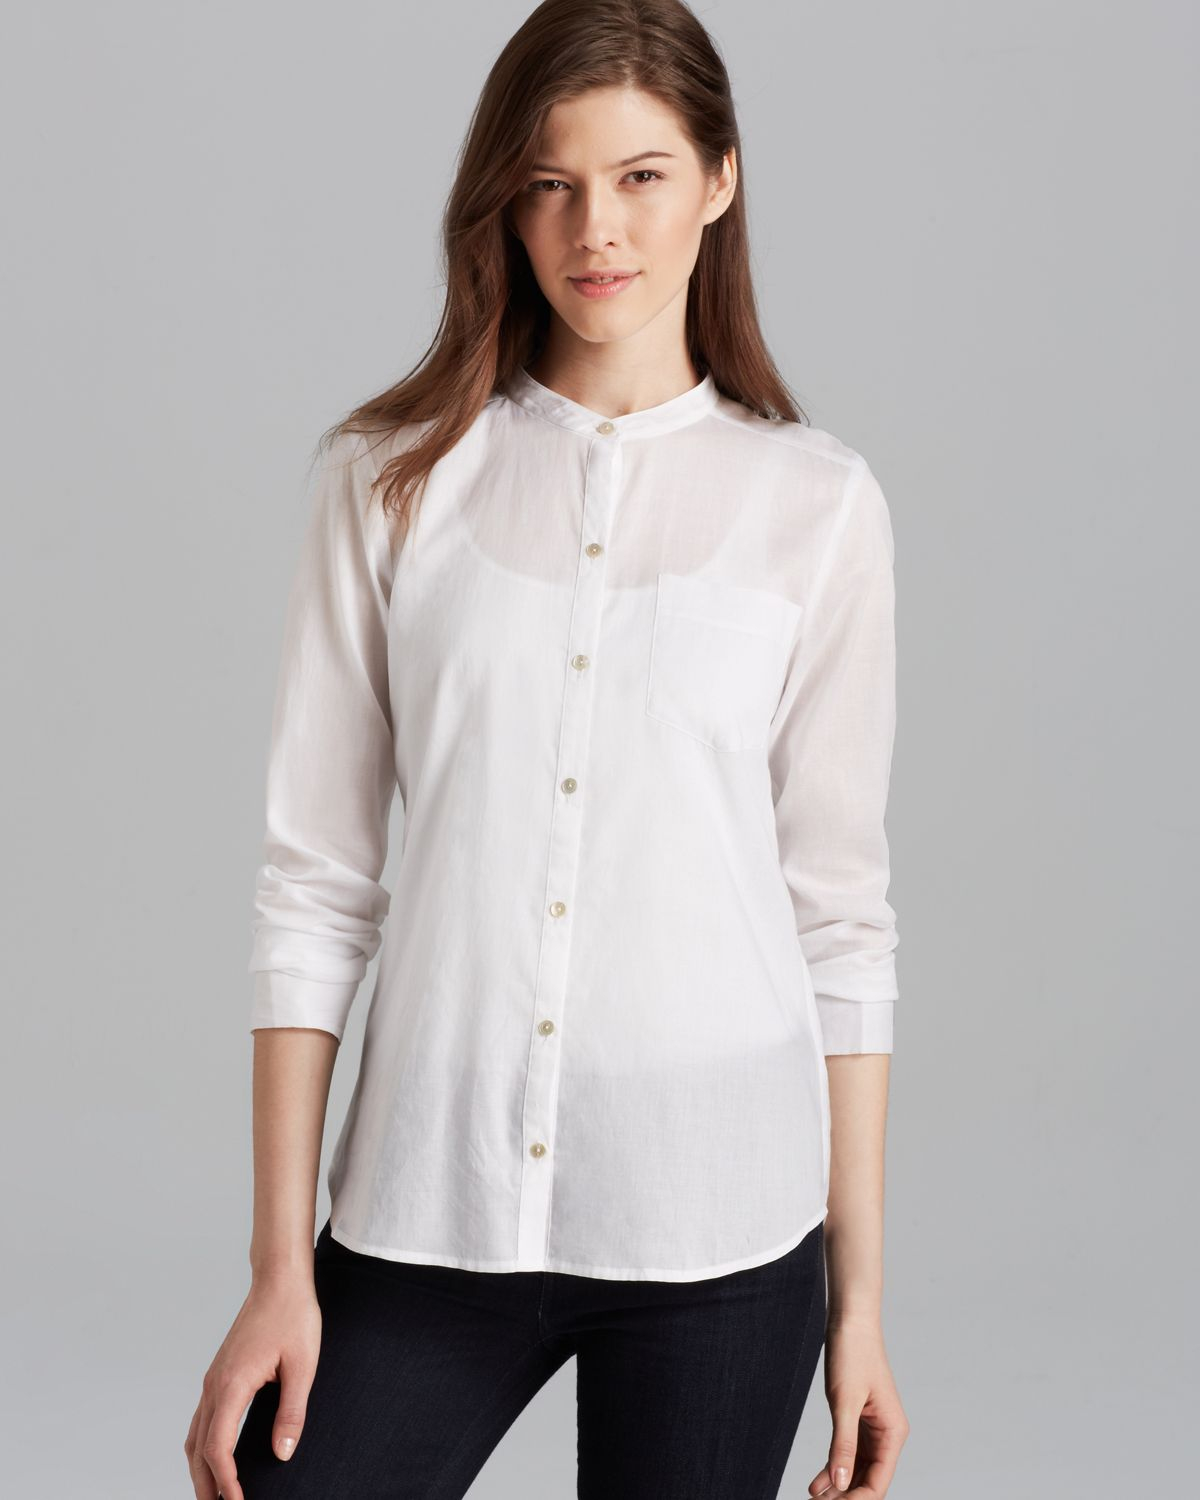 Burberry Tee Shirt Womens